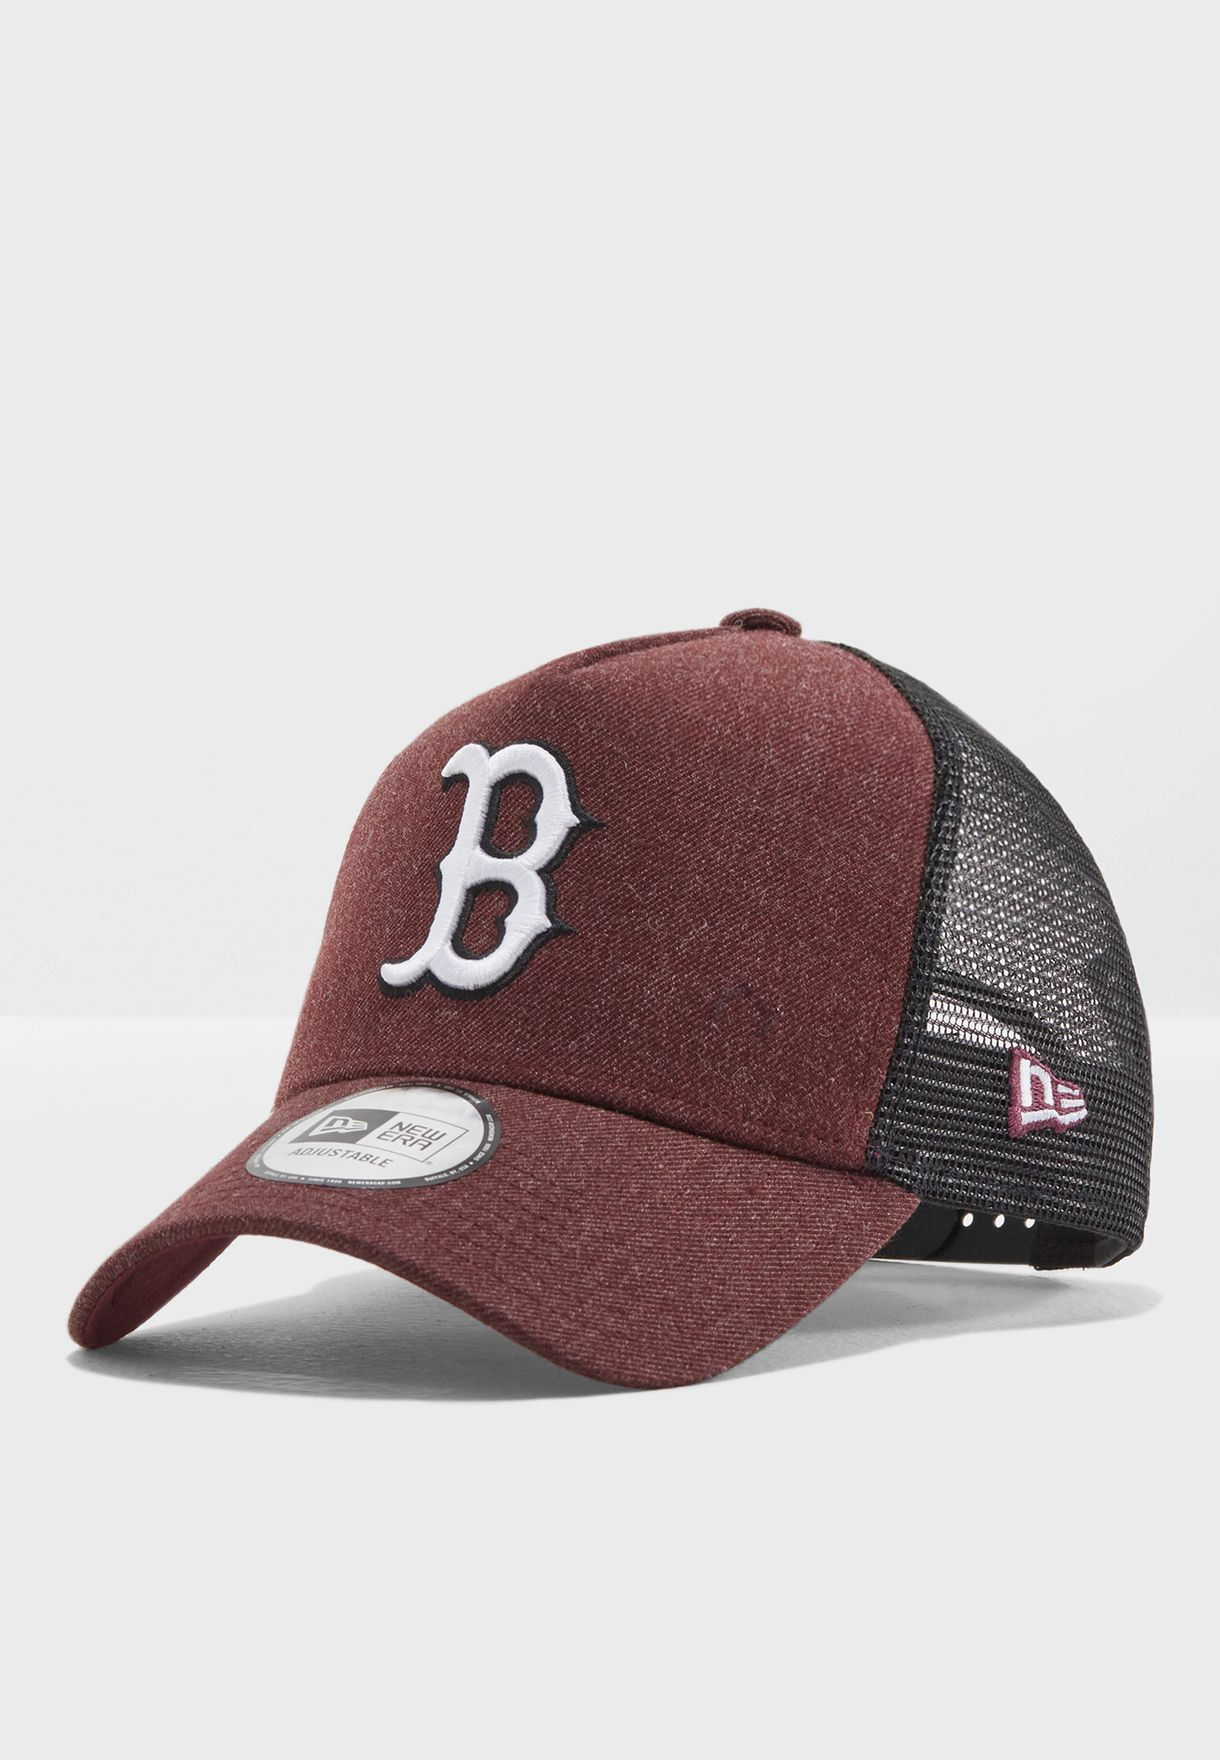 50% off on wholesale super cute shopping boston red sox tan hat zoom 7b972 429dd